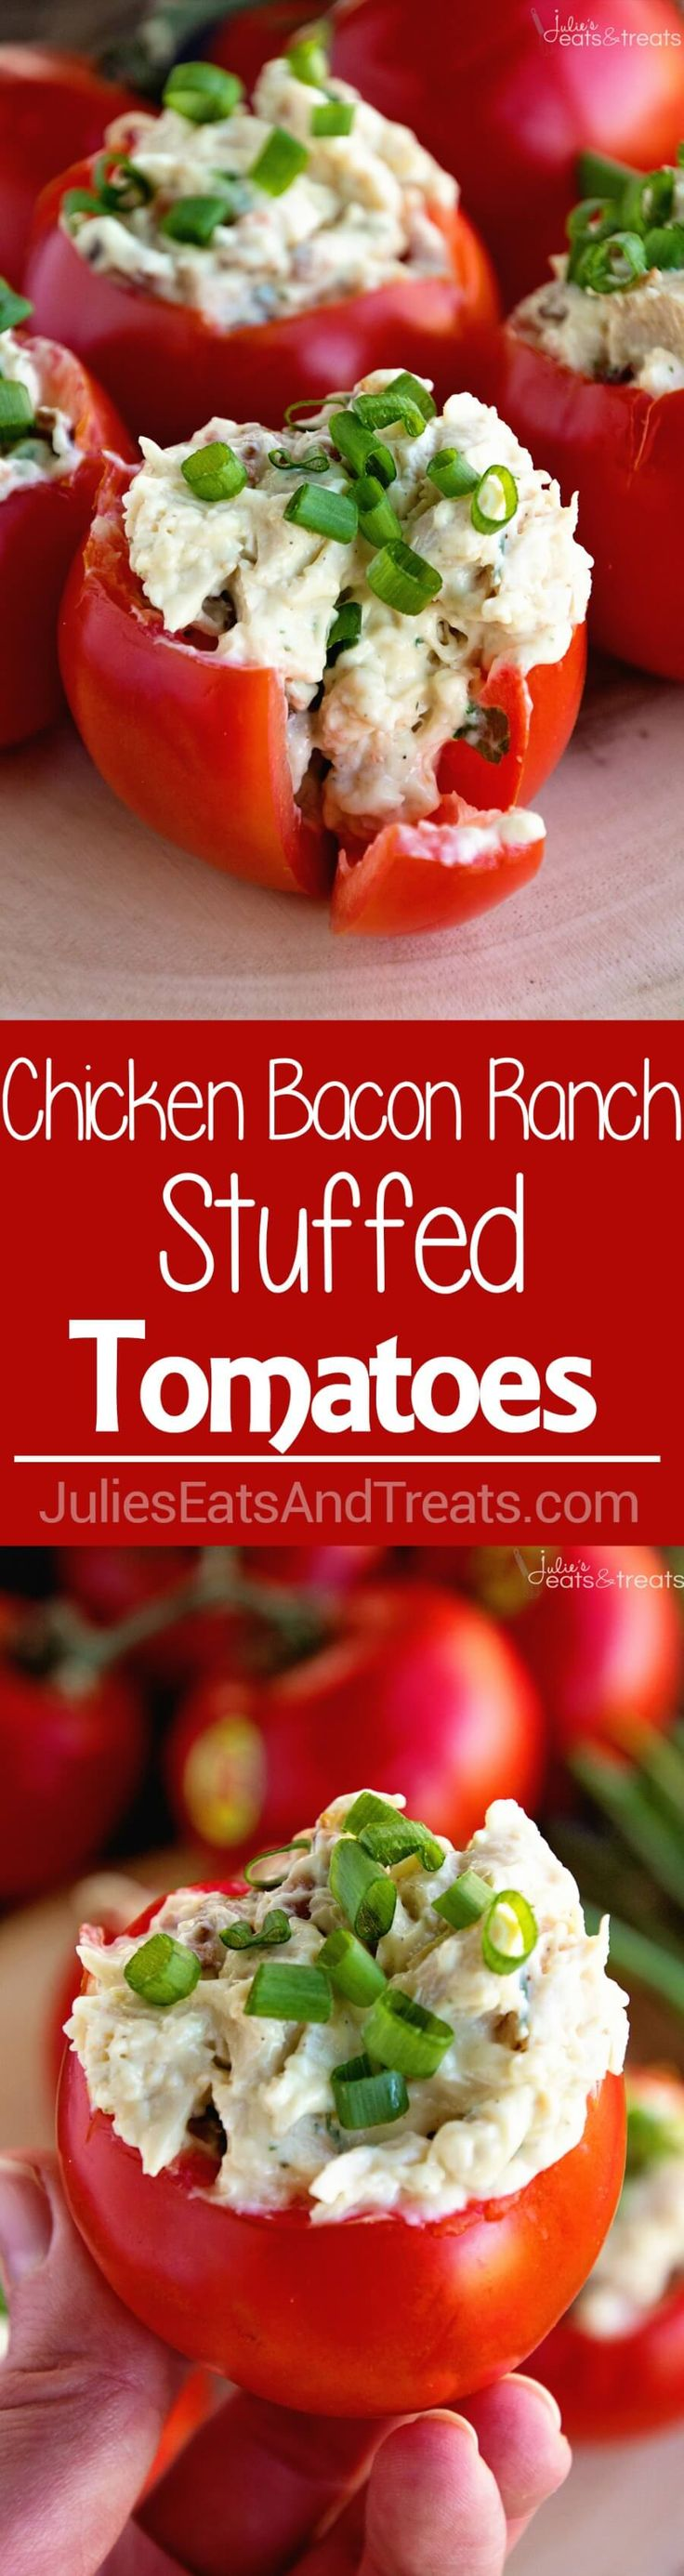 Bacon Ranch Chicken Salad Stuffed Tomatoes Recipe ~ Plump, Juicy Tomatoes Stuffed with a Delicious Chicken Bacon Ranch Salad! The Perfect Healthy, Low Carb Recipe for Summer! ~ http://www.julieseatsandtreats.com